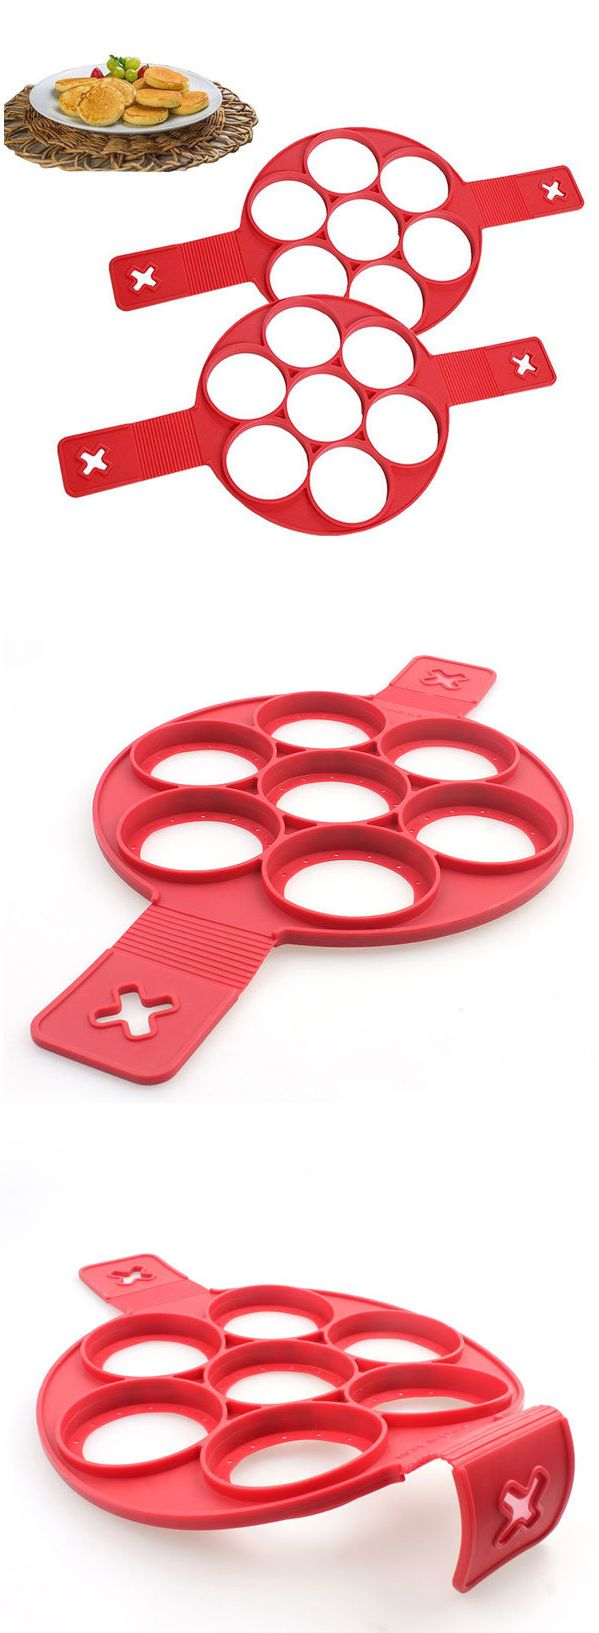 US$8.58 Silicone Perfect Pancake Mold Fantastic Non-stick Pancake Cake Omelette Mold Maker Egg Ring